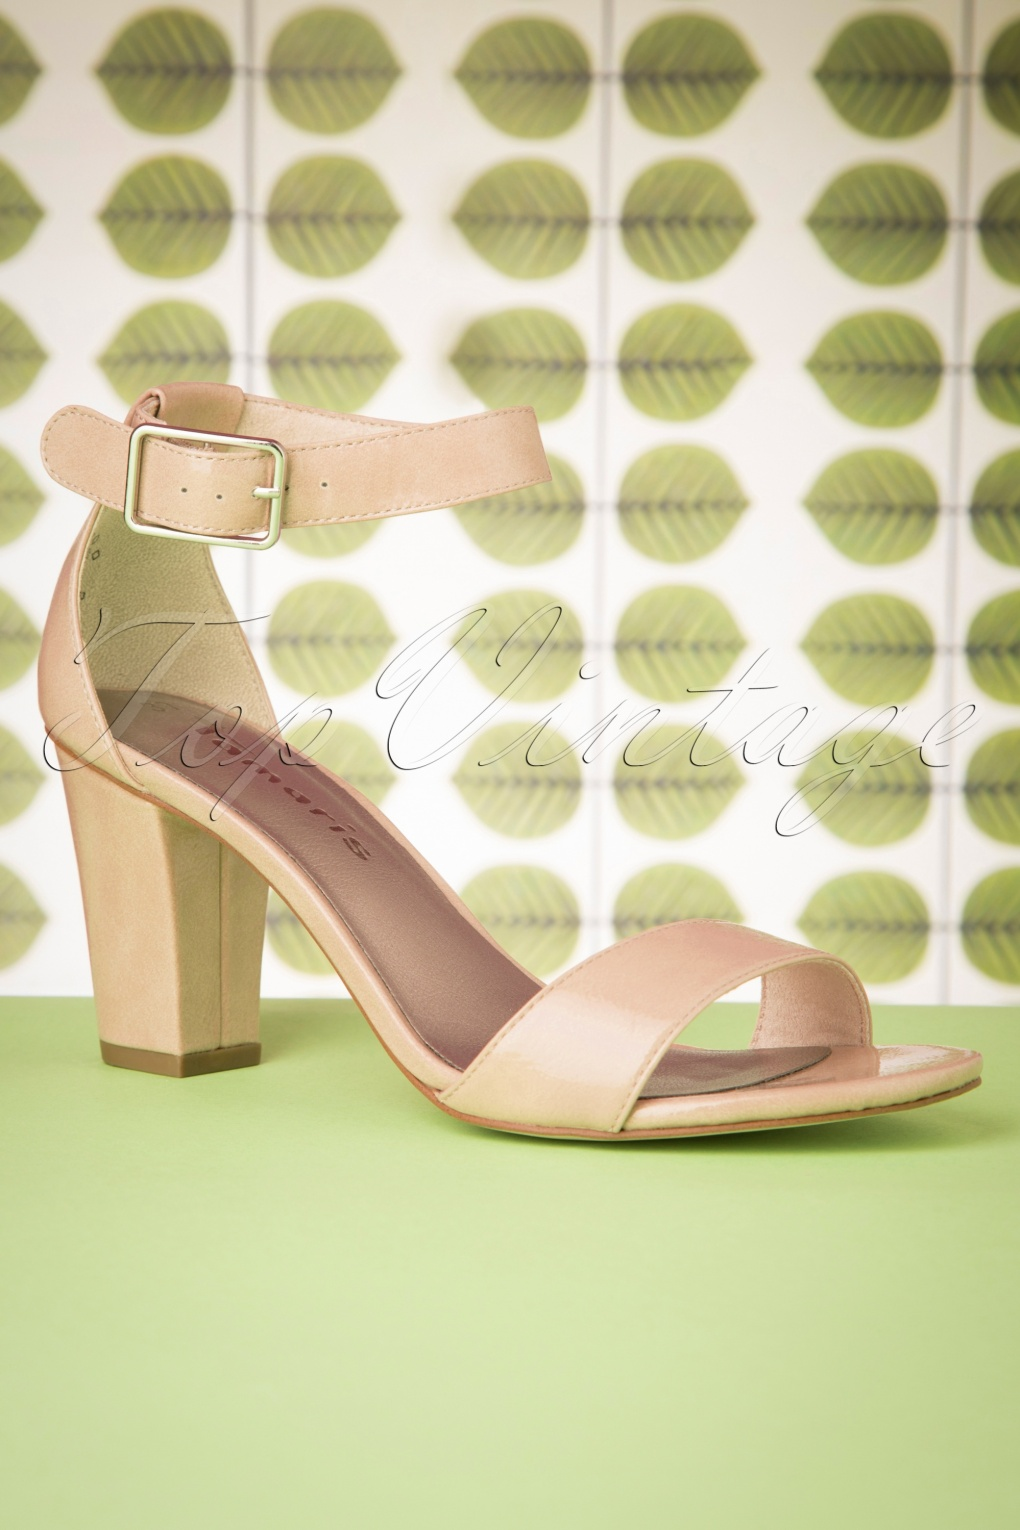 60s Patent Sandals in Nude